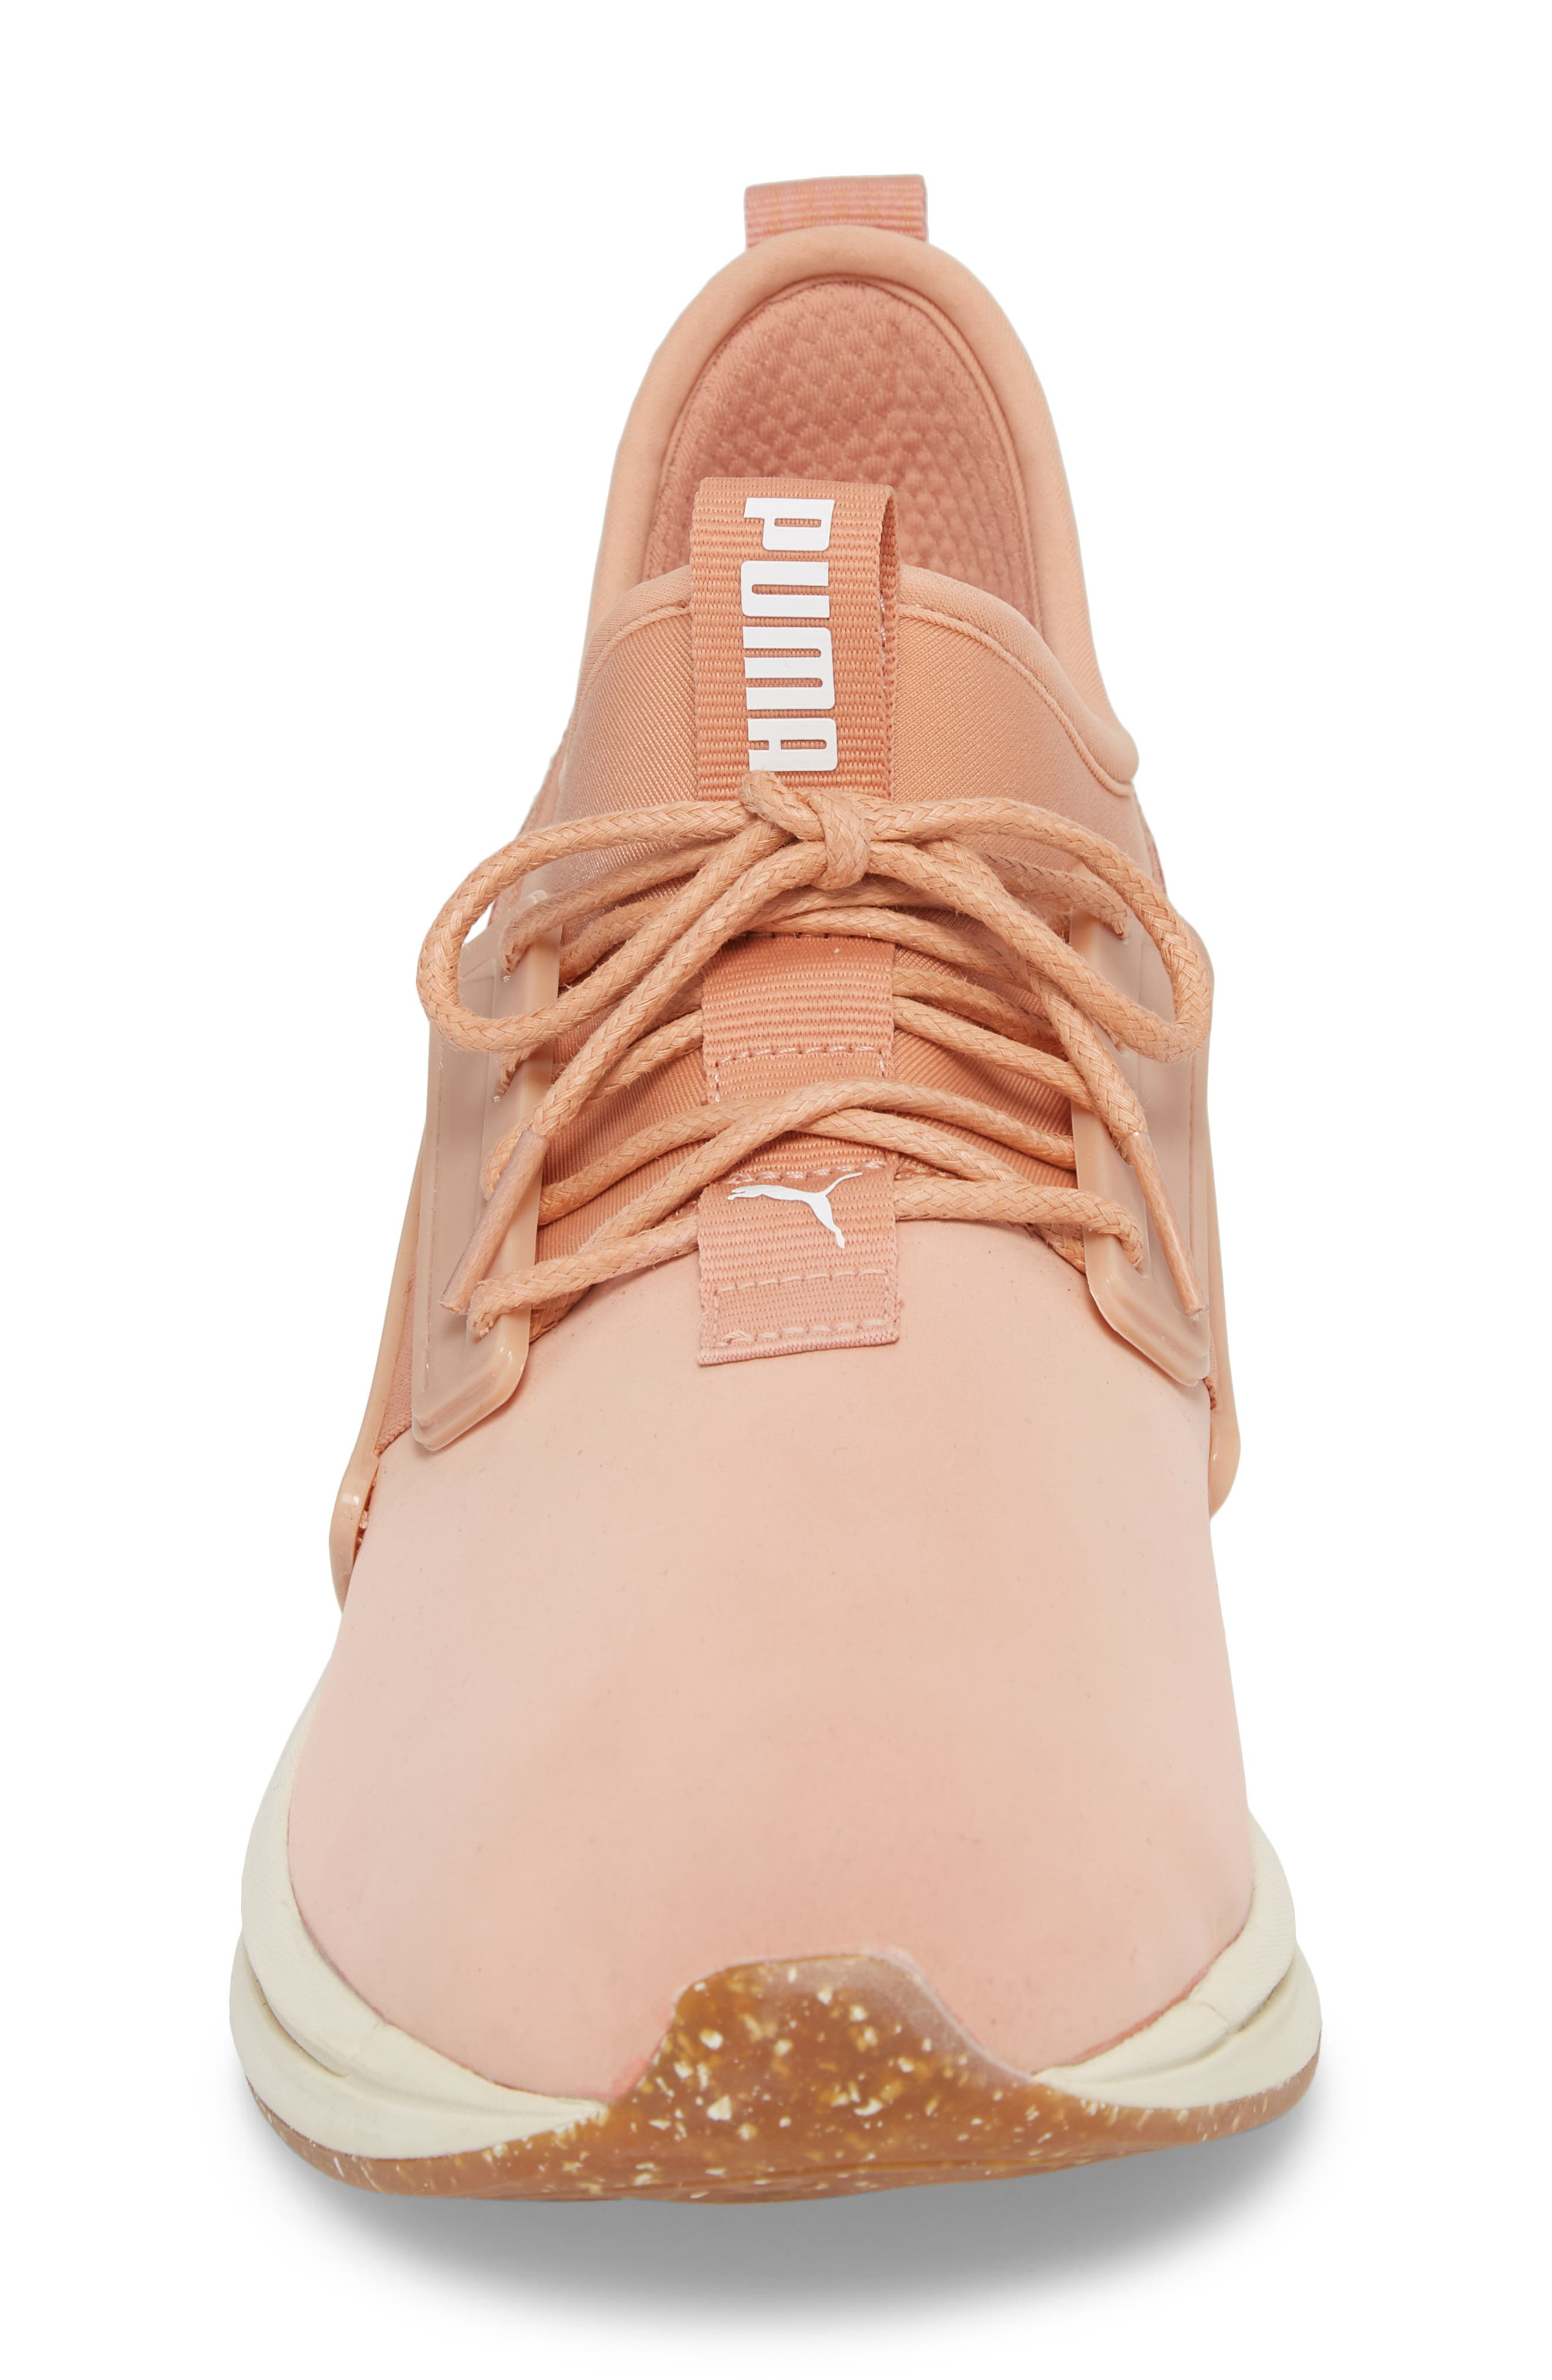 IGNITE Limitless SR Nature Sneaker,                             Alternate thumbnail 4, color,                             Muted Clay Leather/ Suede